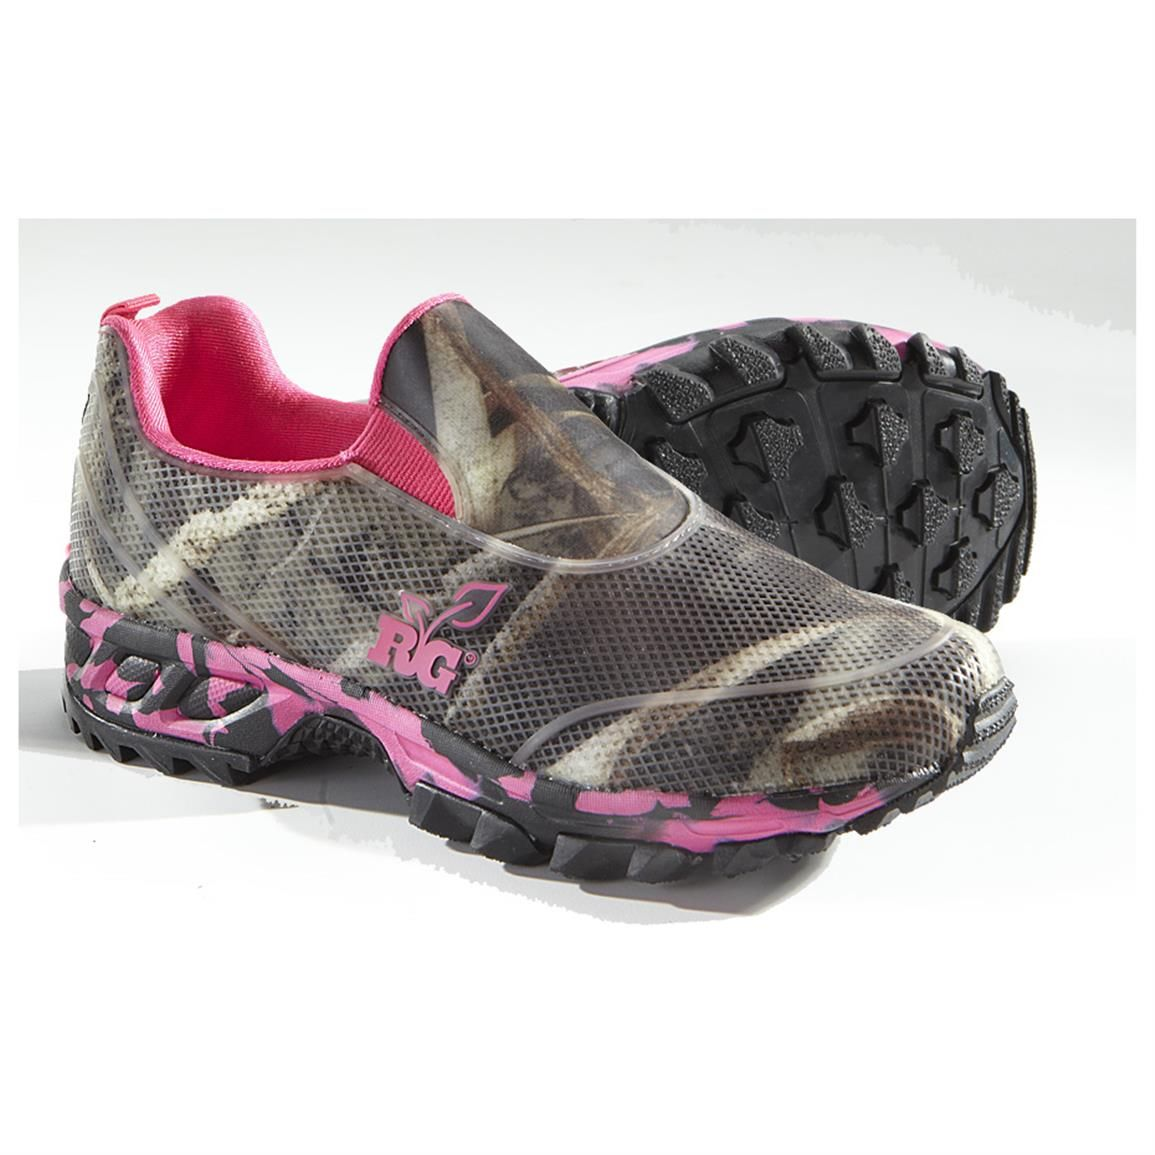 bdd4d3780c Women's Realtree® Viper Casual Moc Slip-on Shoes, Hot Pink / Max 5 ...